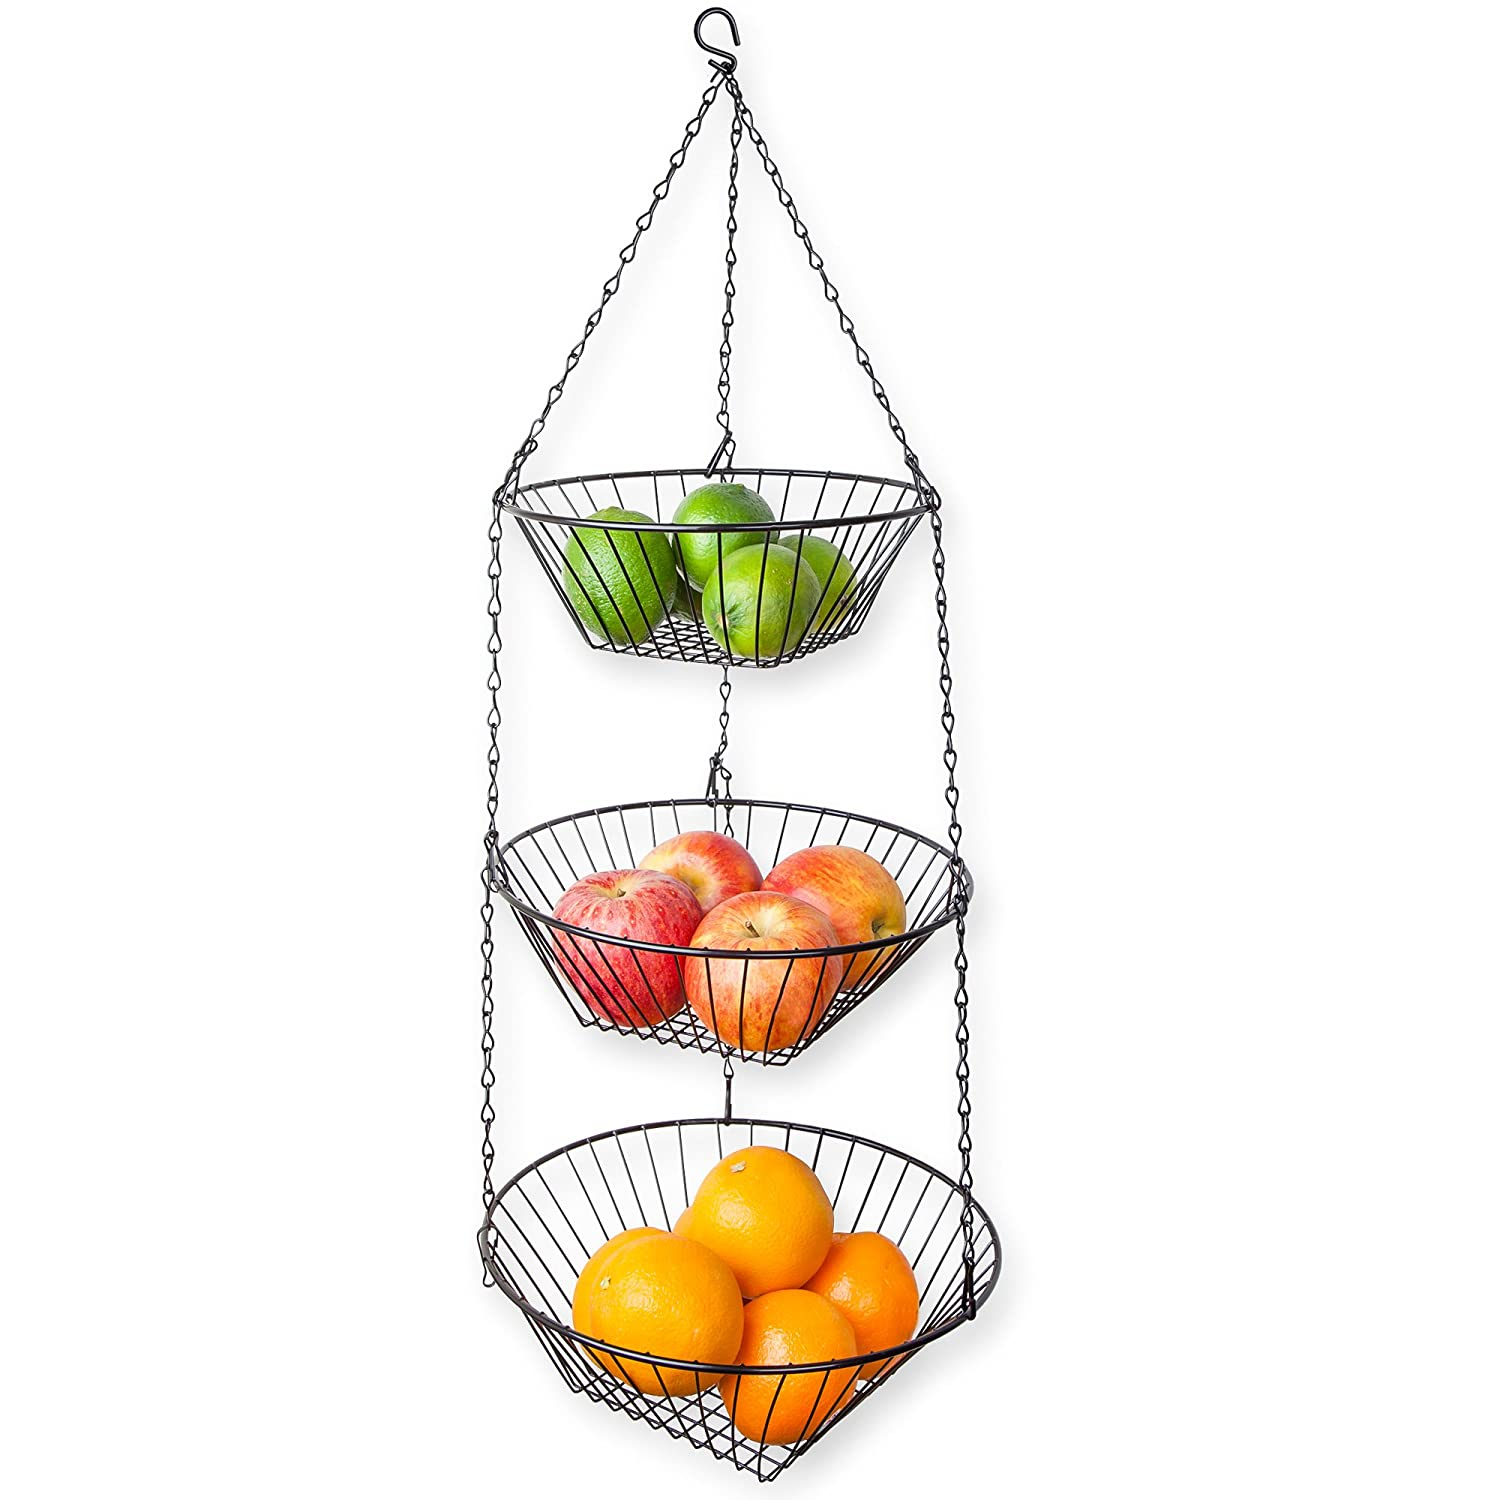 Uncategorized Hanging Baskets For Fruit purecolonsdetoxreviews